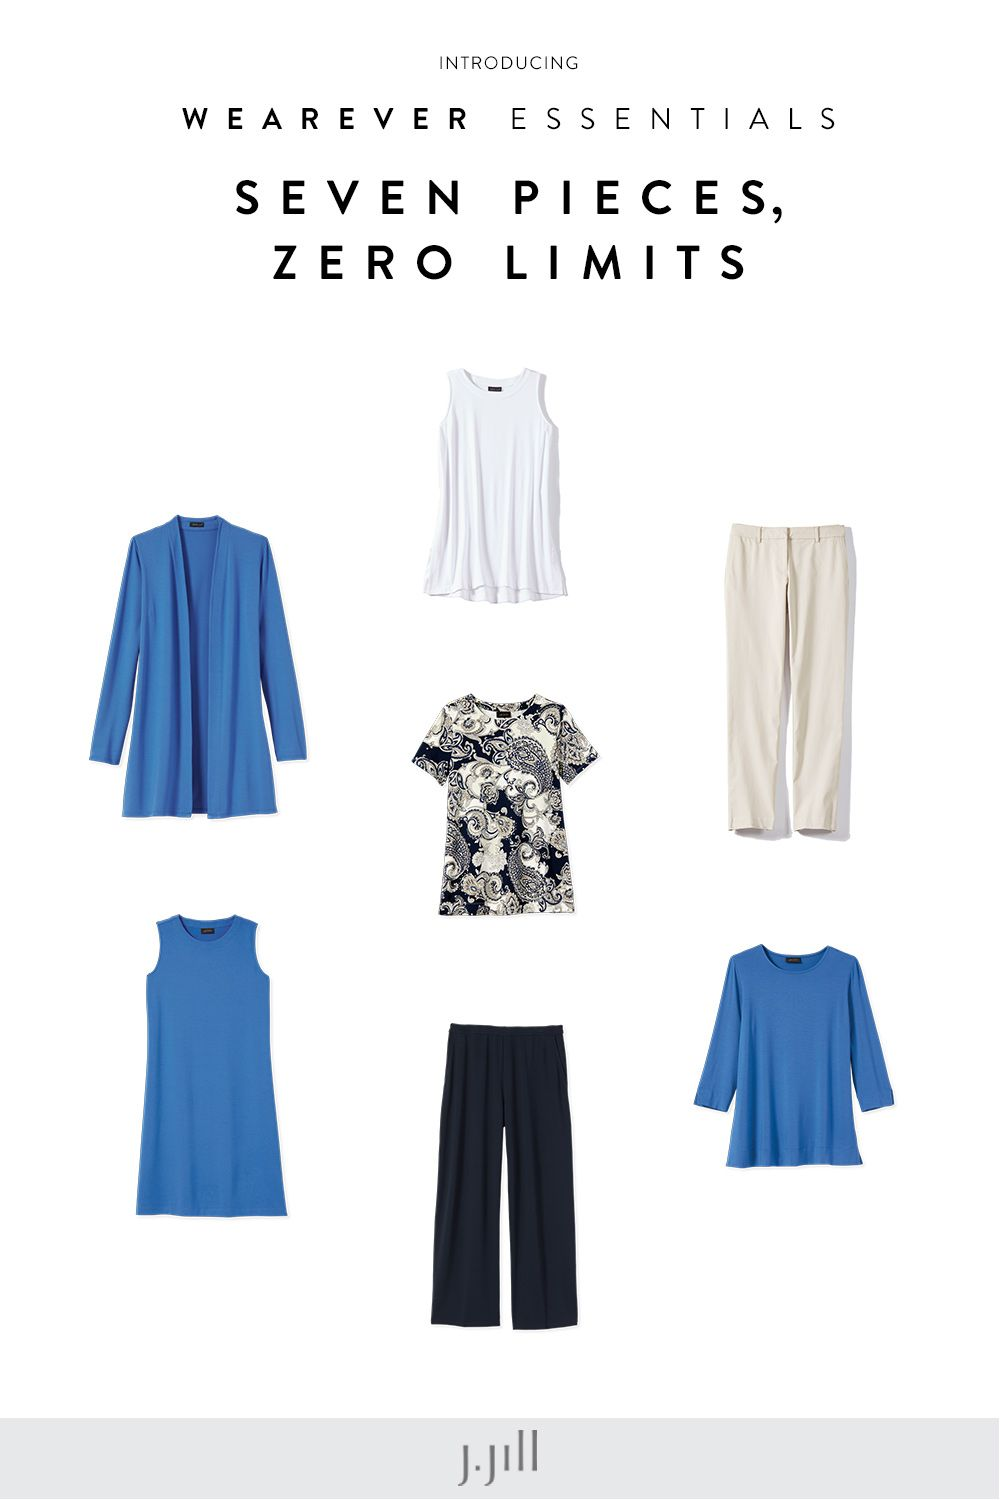 Must-have styles for easy outfits that work with all your